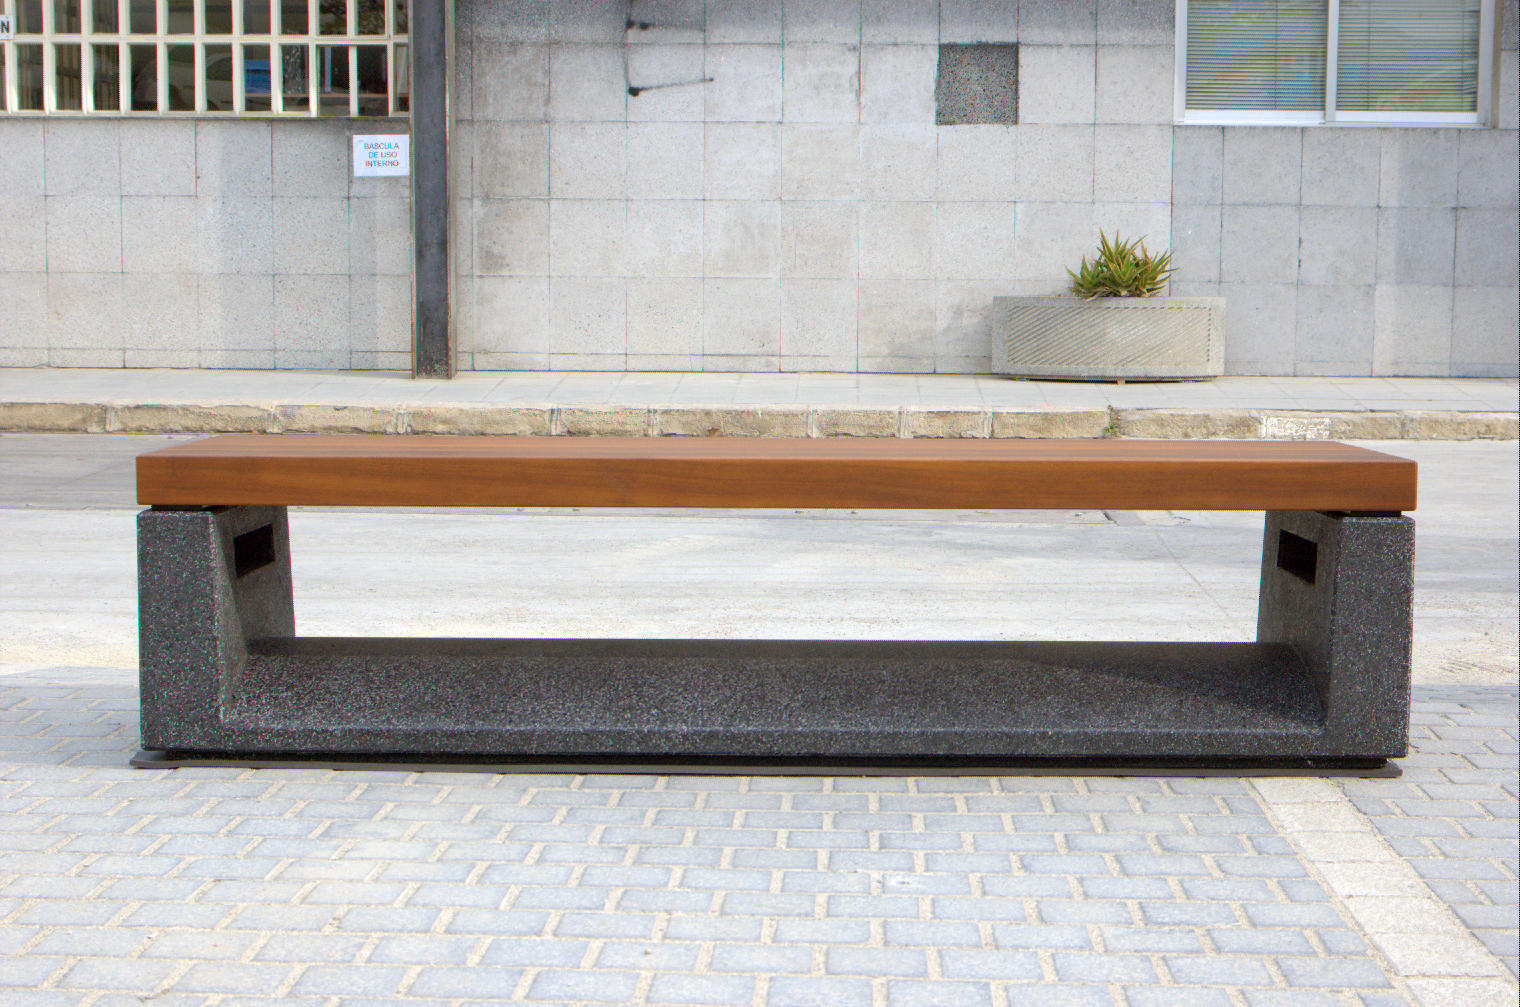 U Shape Exterior Benches From Escofet 1886 Architonic